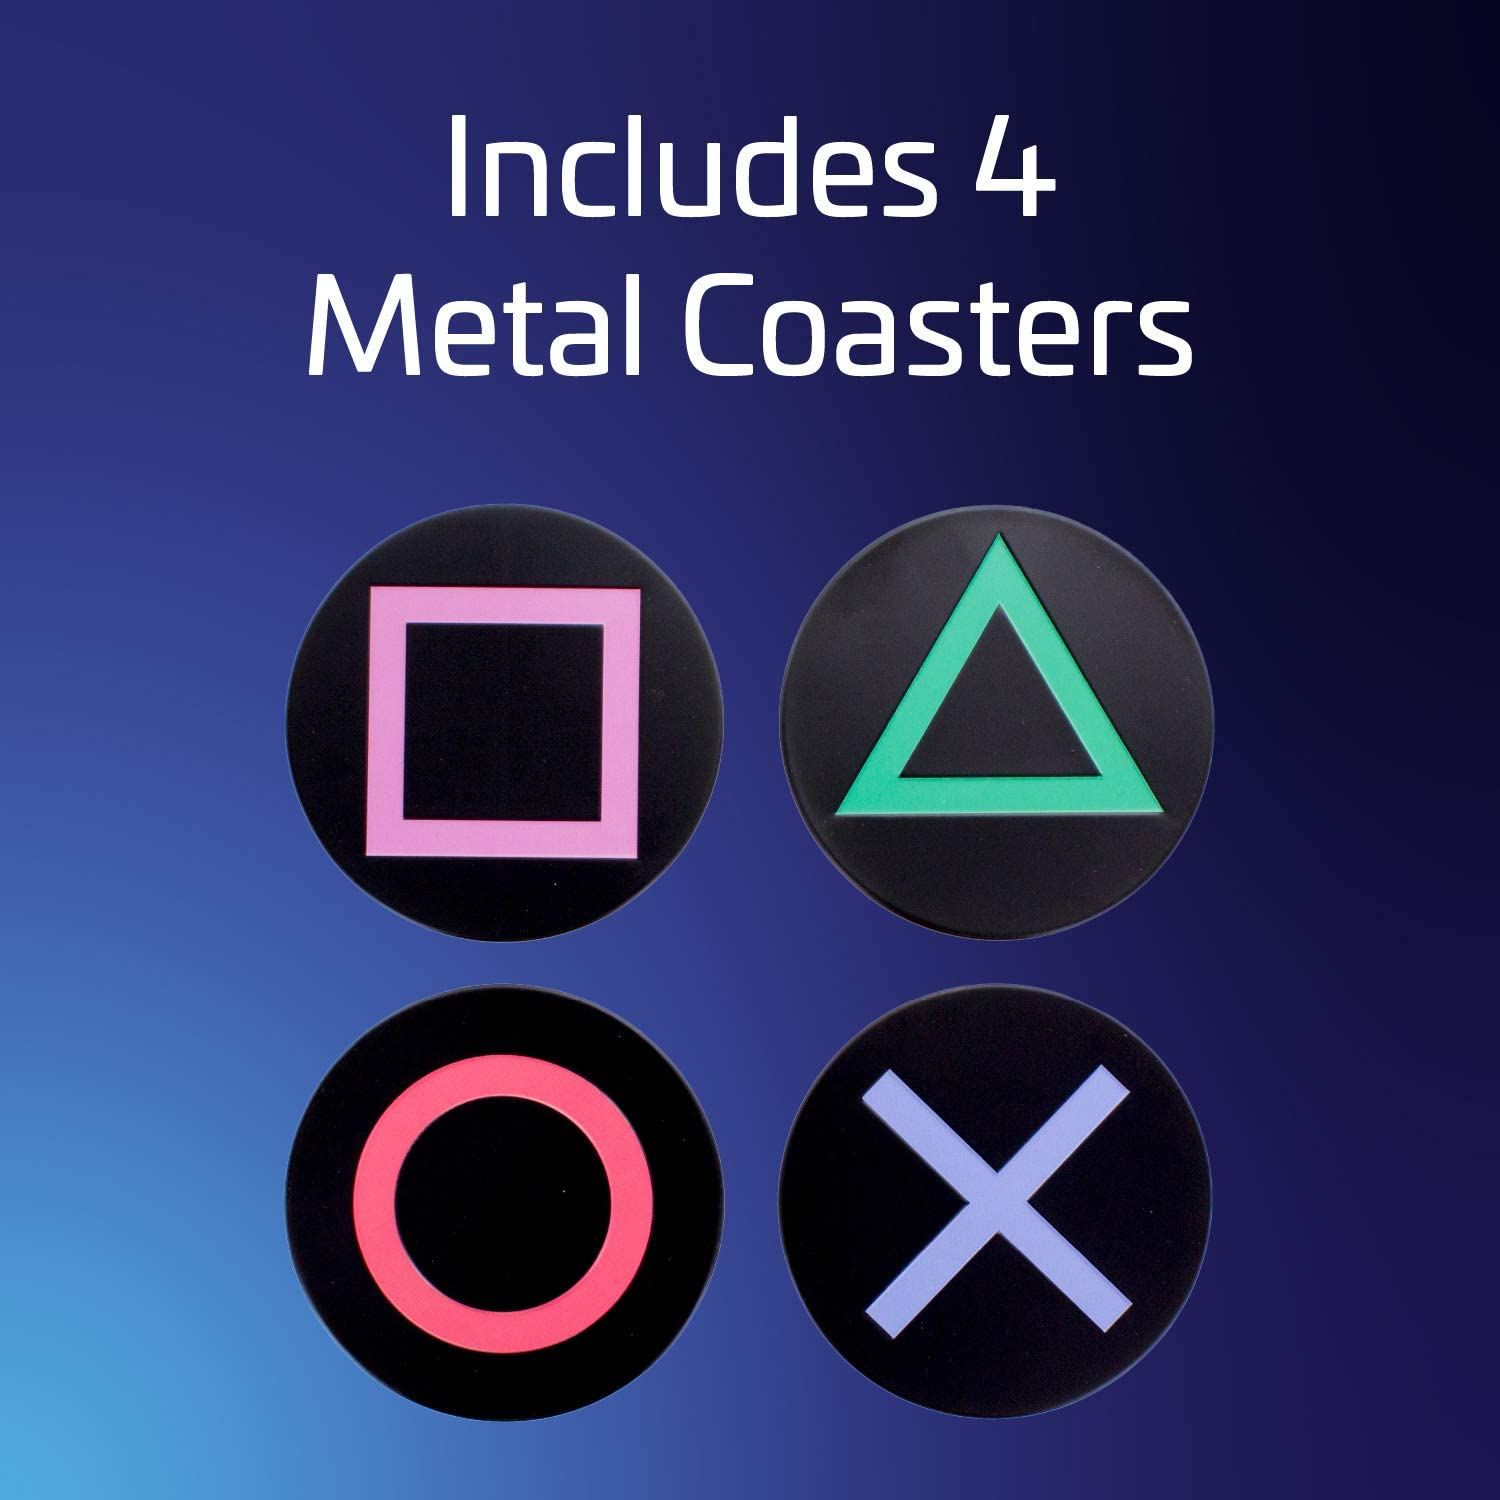 COASTERS PLAYSTATION ICONS METAL (4 PACK)